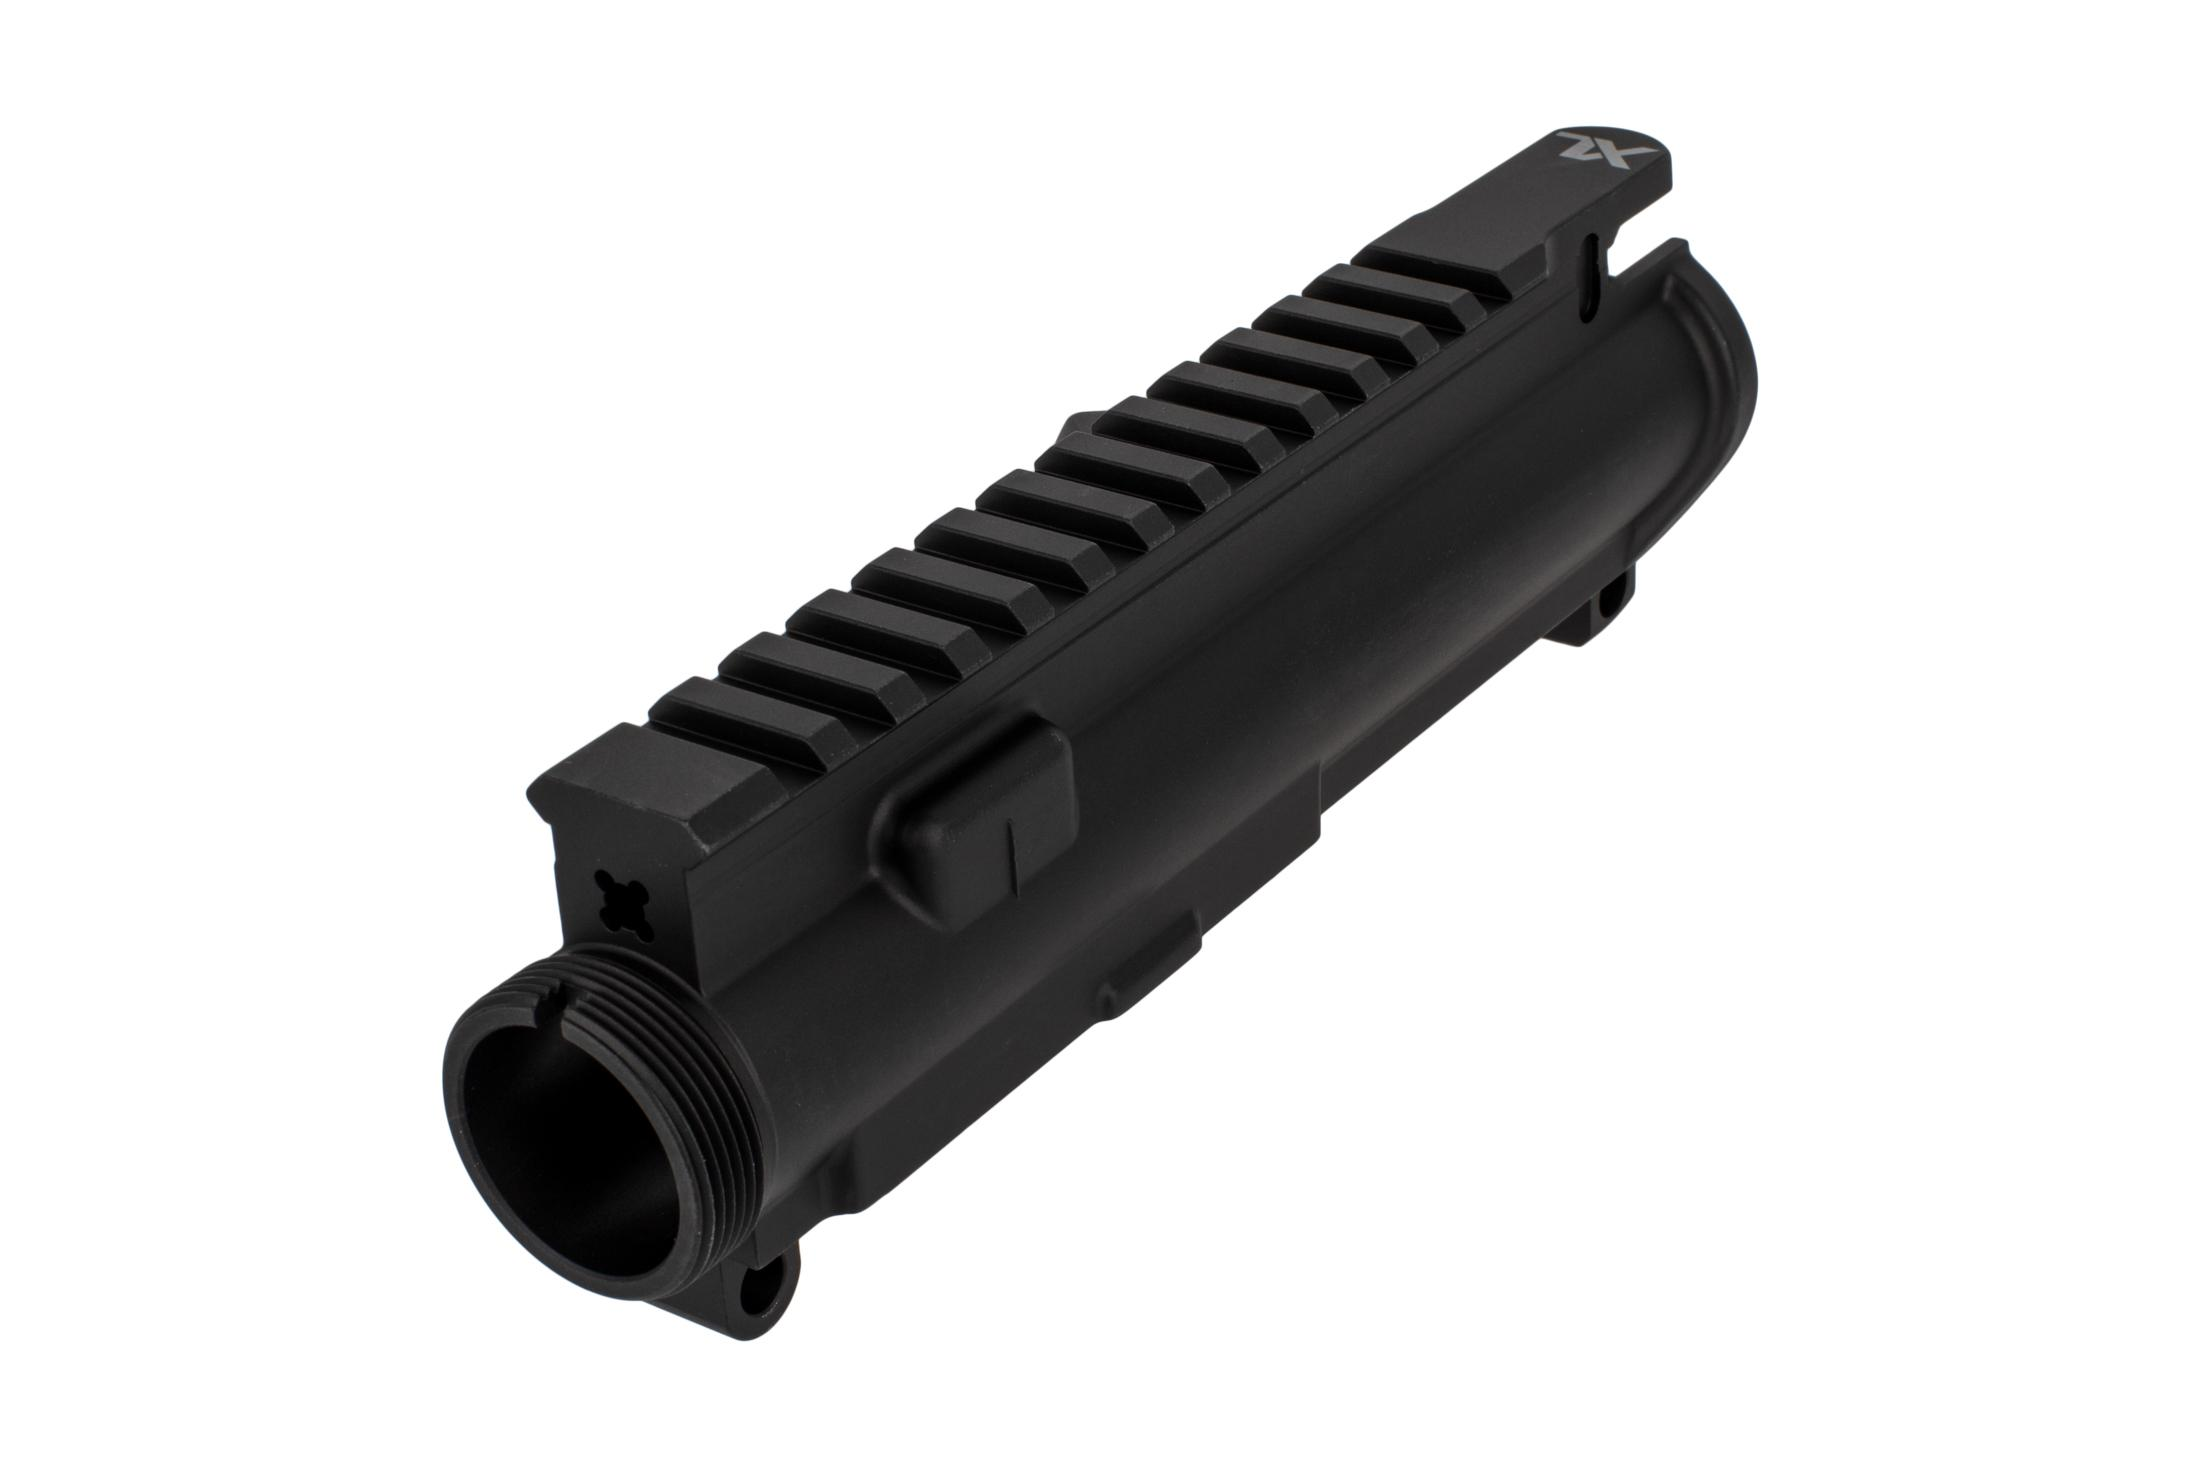 The Aero Precision big bore AR15 stripped upper receiver features the XL logo on the tang